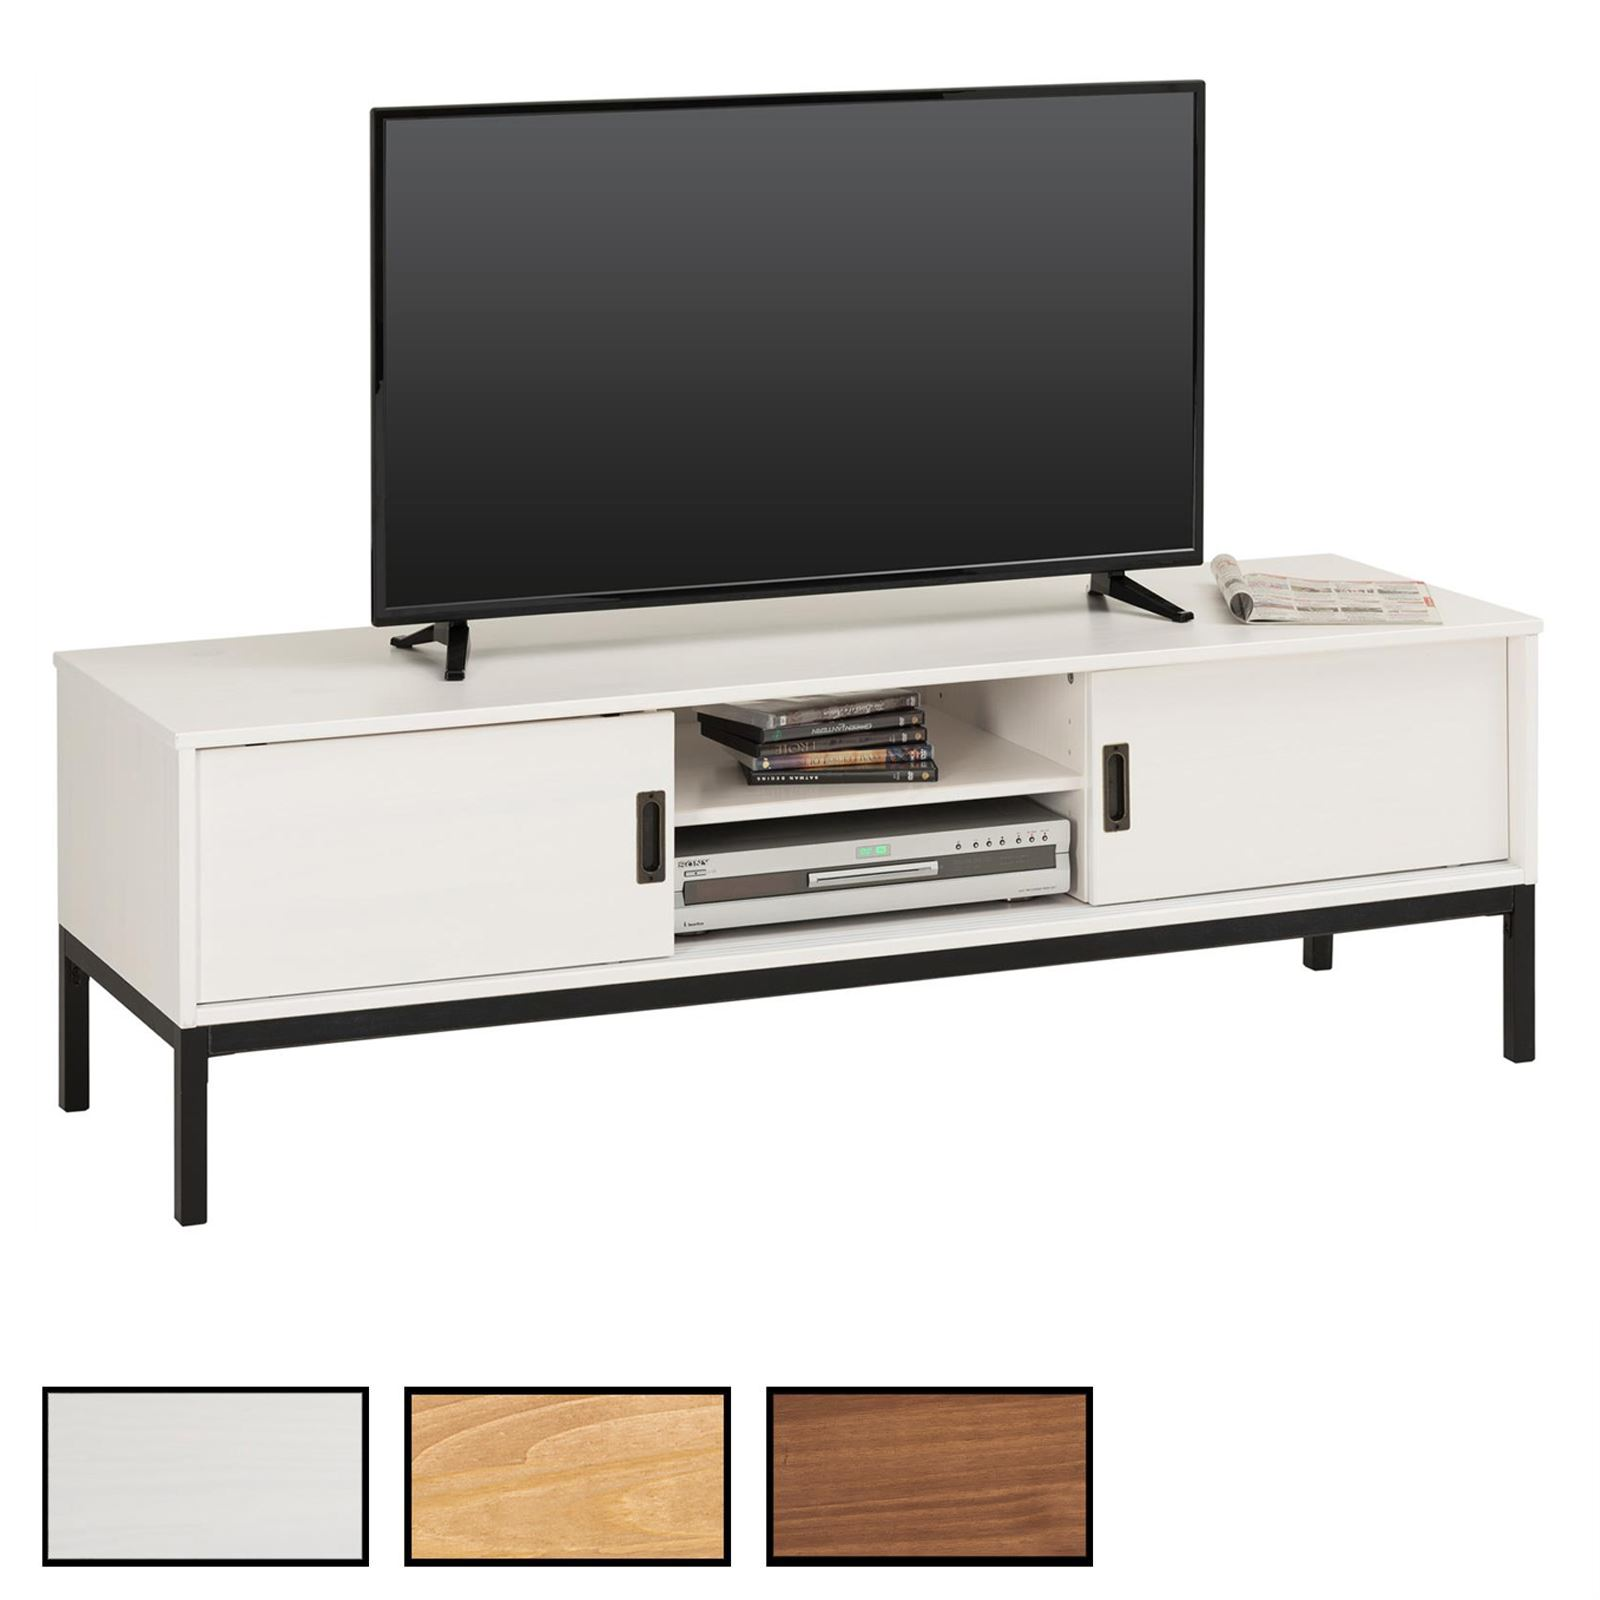 tv lowboard selma mit 2 schiebet ren mobilia24. Black Bedroom Furniture Sets. Home Design Ideas